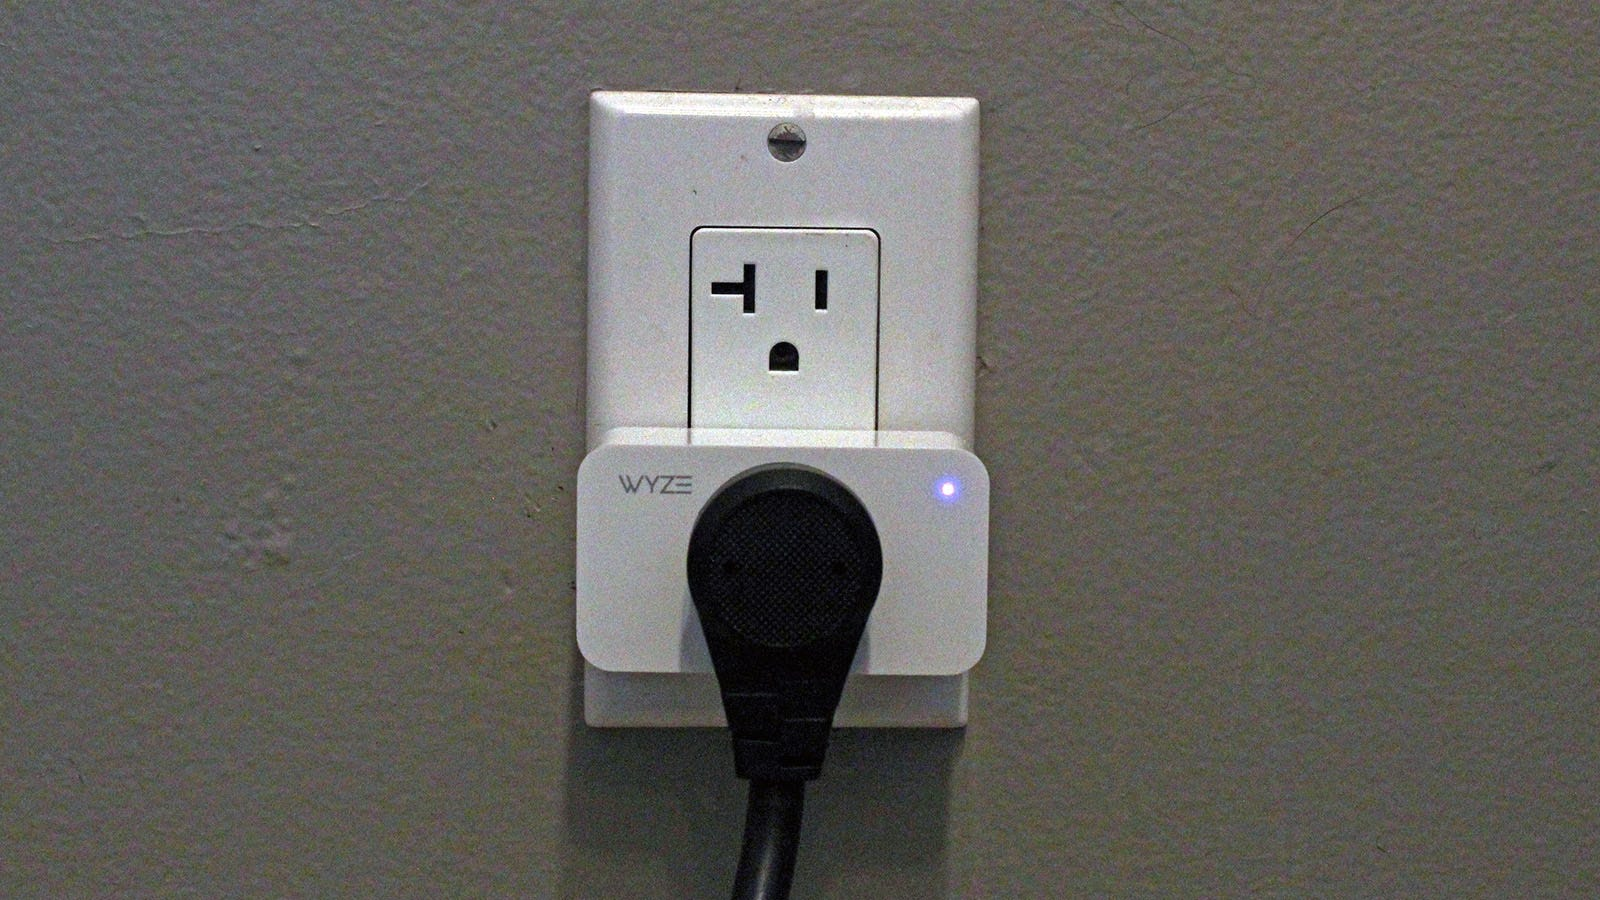 A Wyze Plug in an outlet, with a device plugged into it.